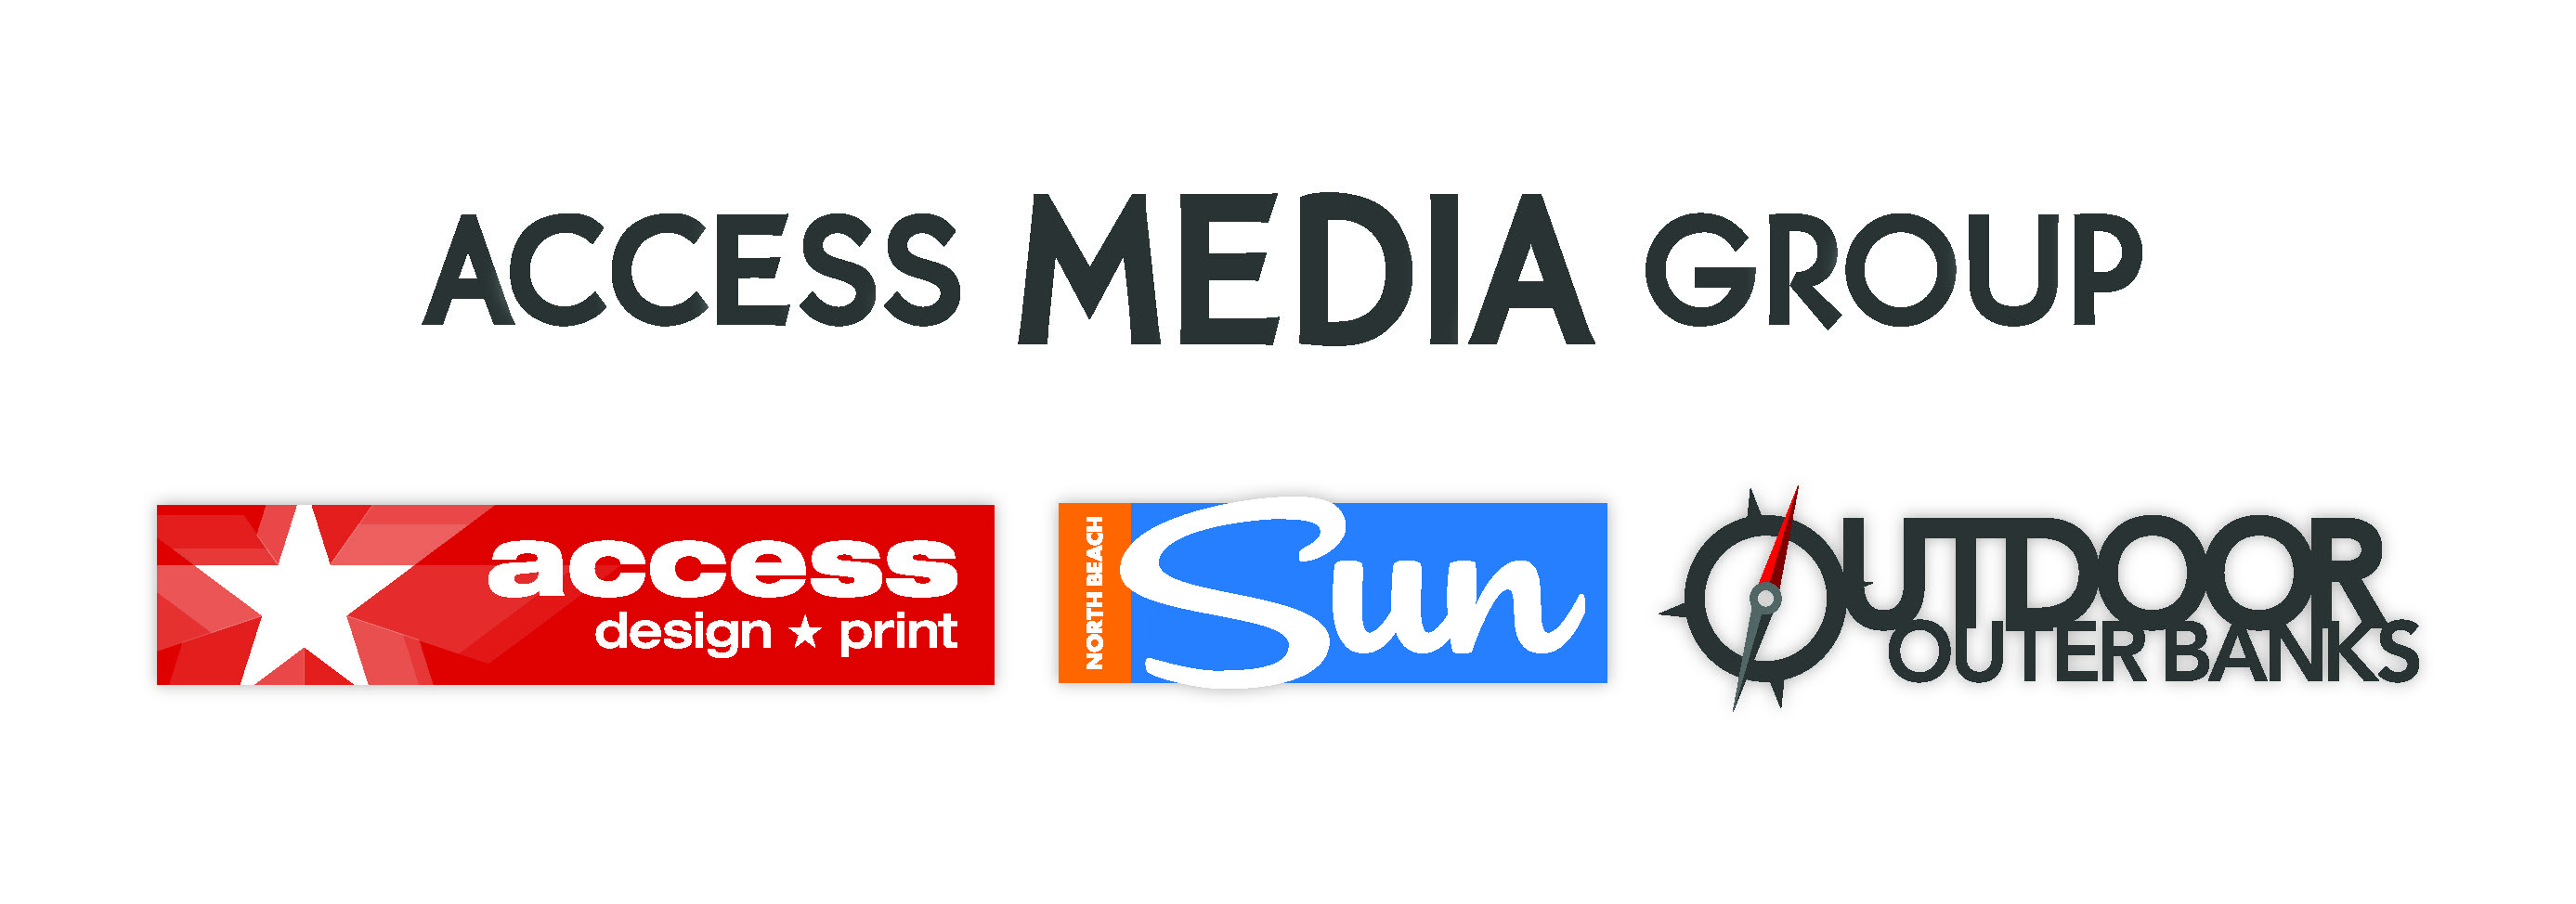 Access Media Group